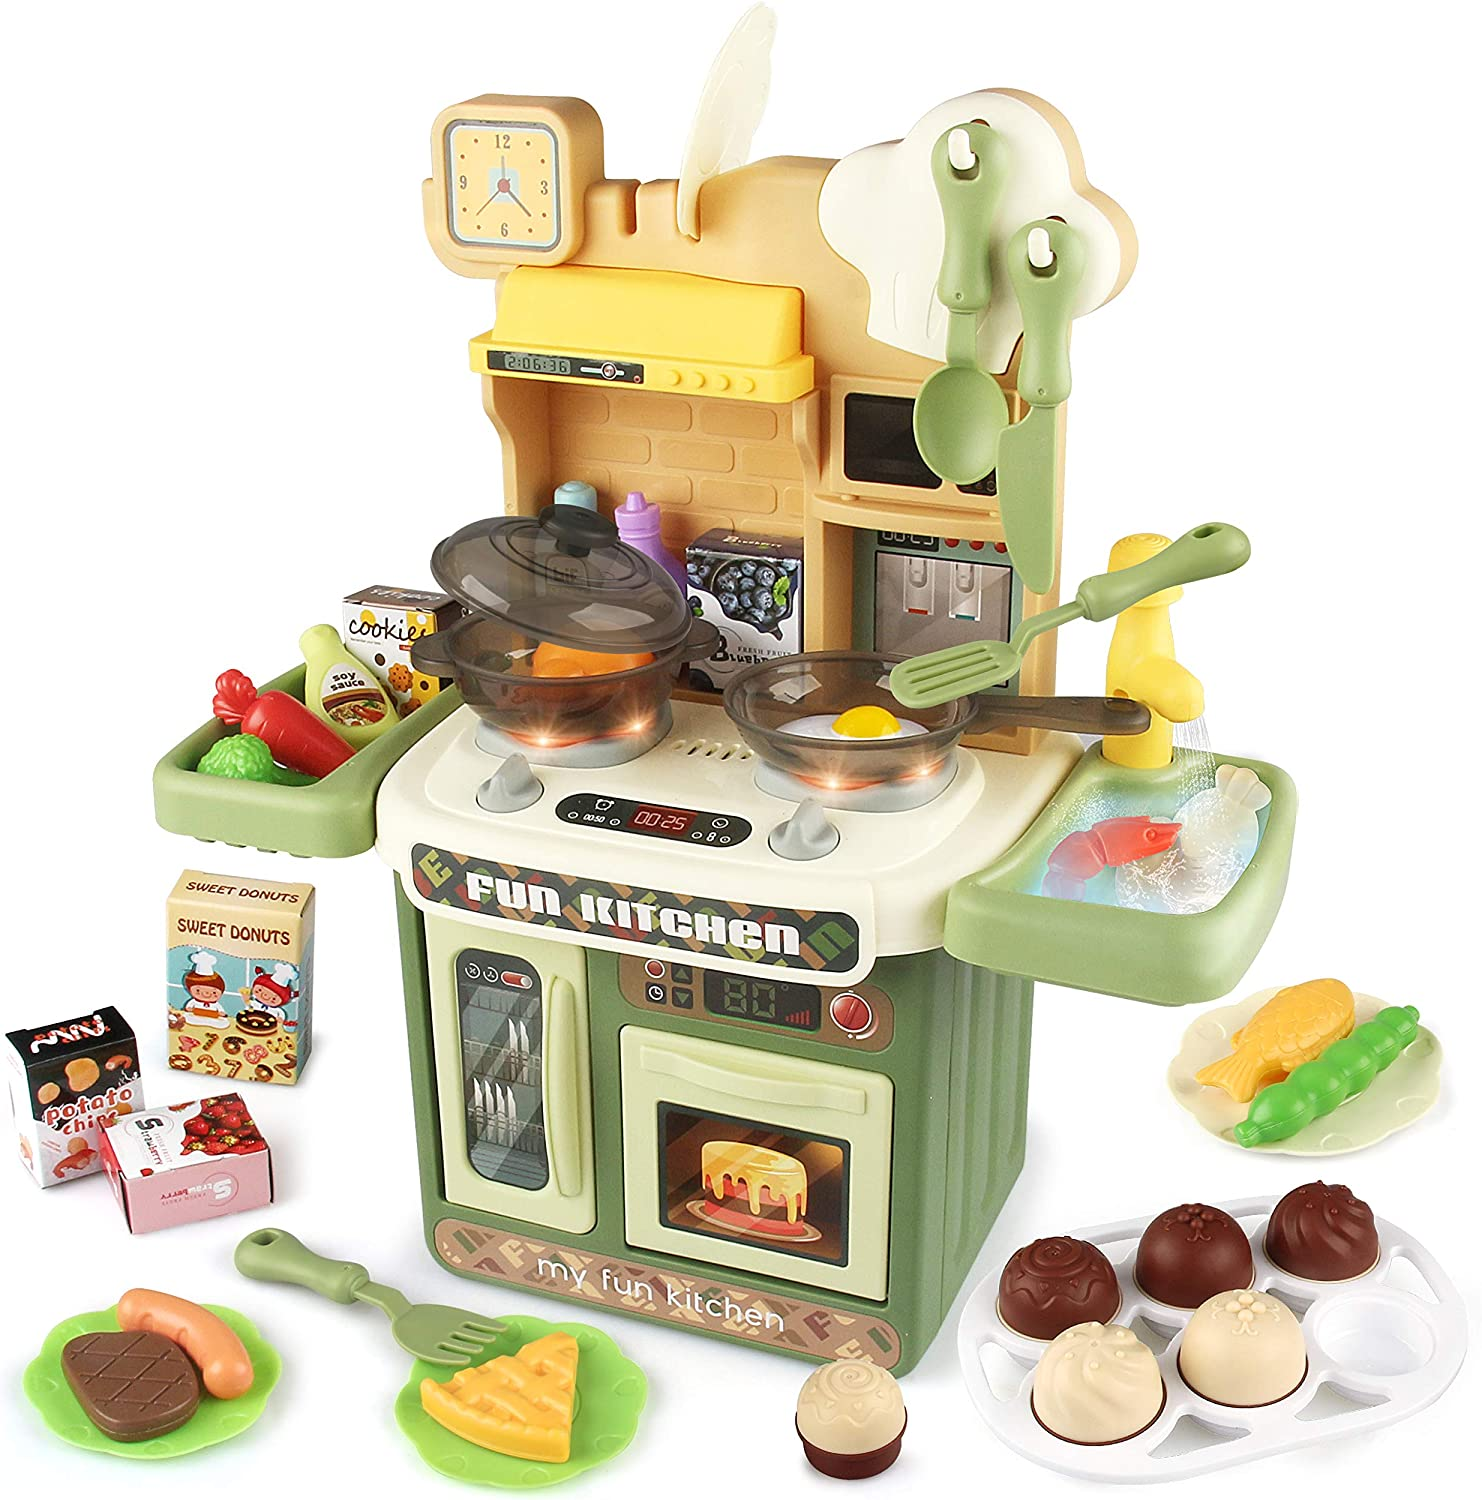 KIMSTONE Kids Kitchen Play Set,Play Kitchen Set with Realistic Lights & Sounds,Play Sink with Running Water,Toddlers Cooking Accessories,Play Food Toy for Boys and Girls